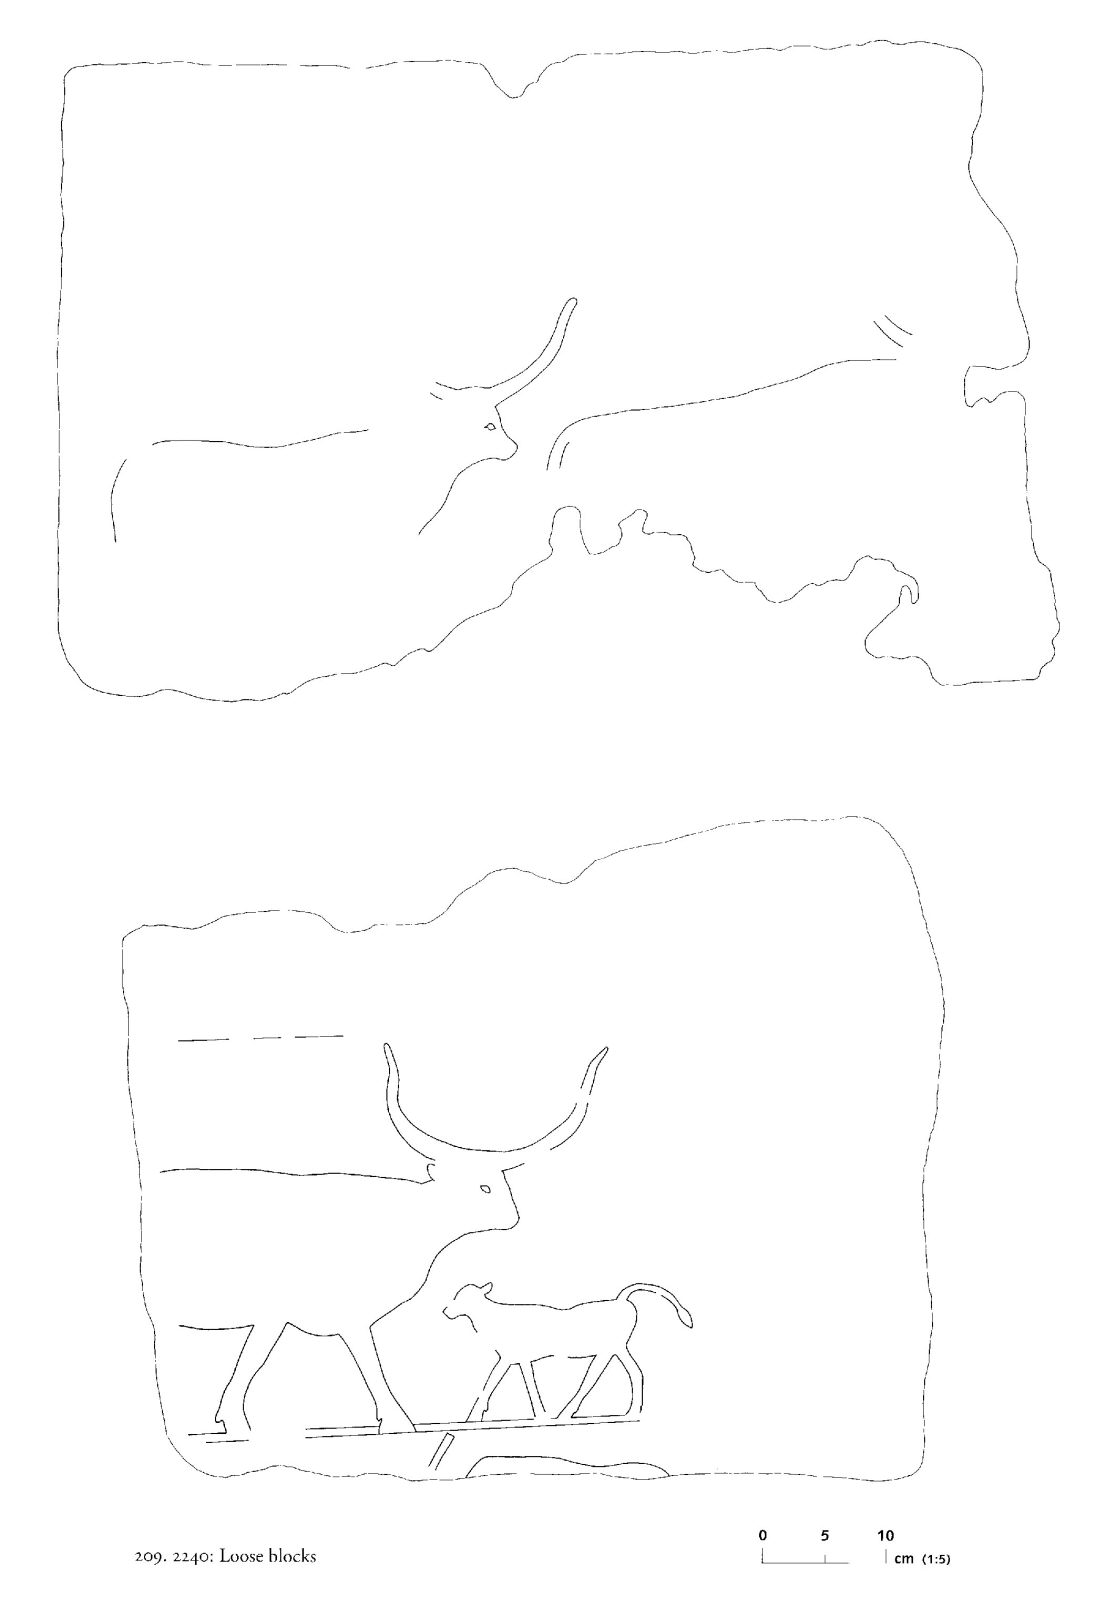 Drawings: G 2240: relief from loose blocks